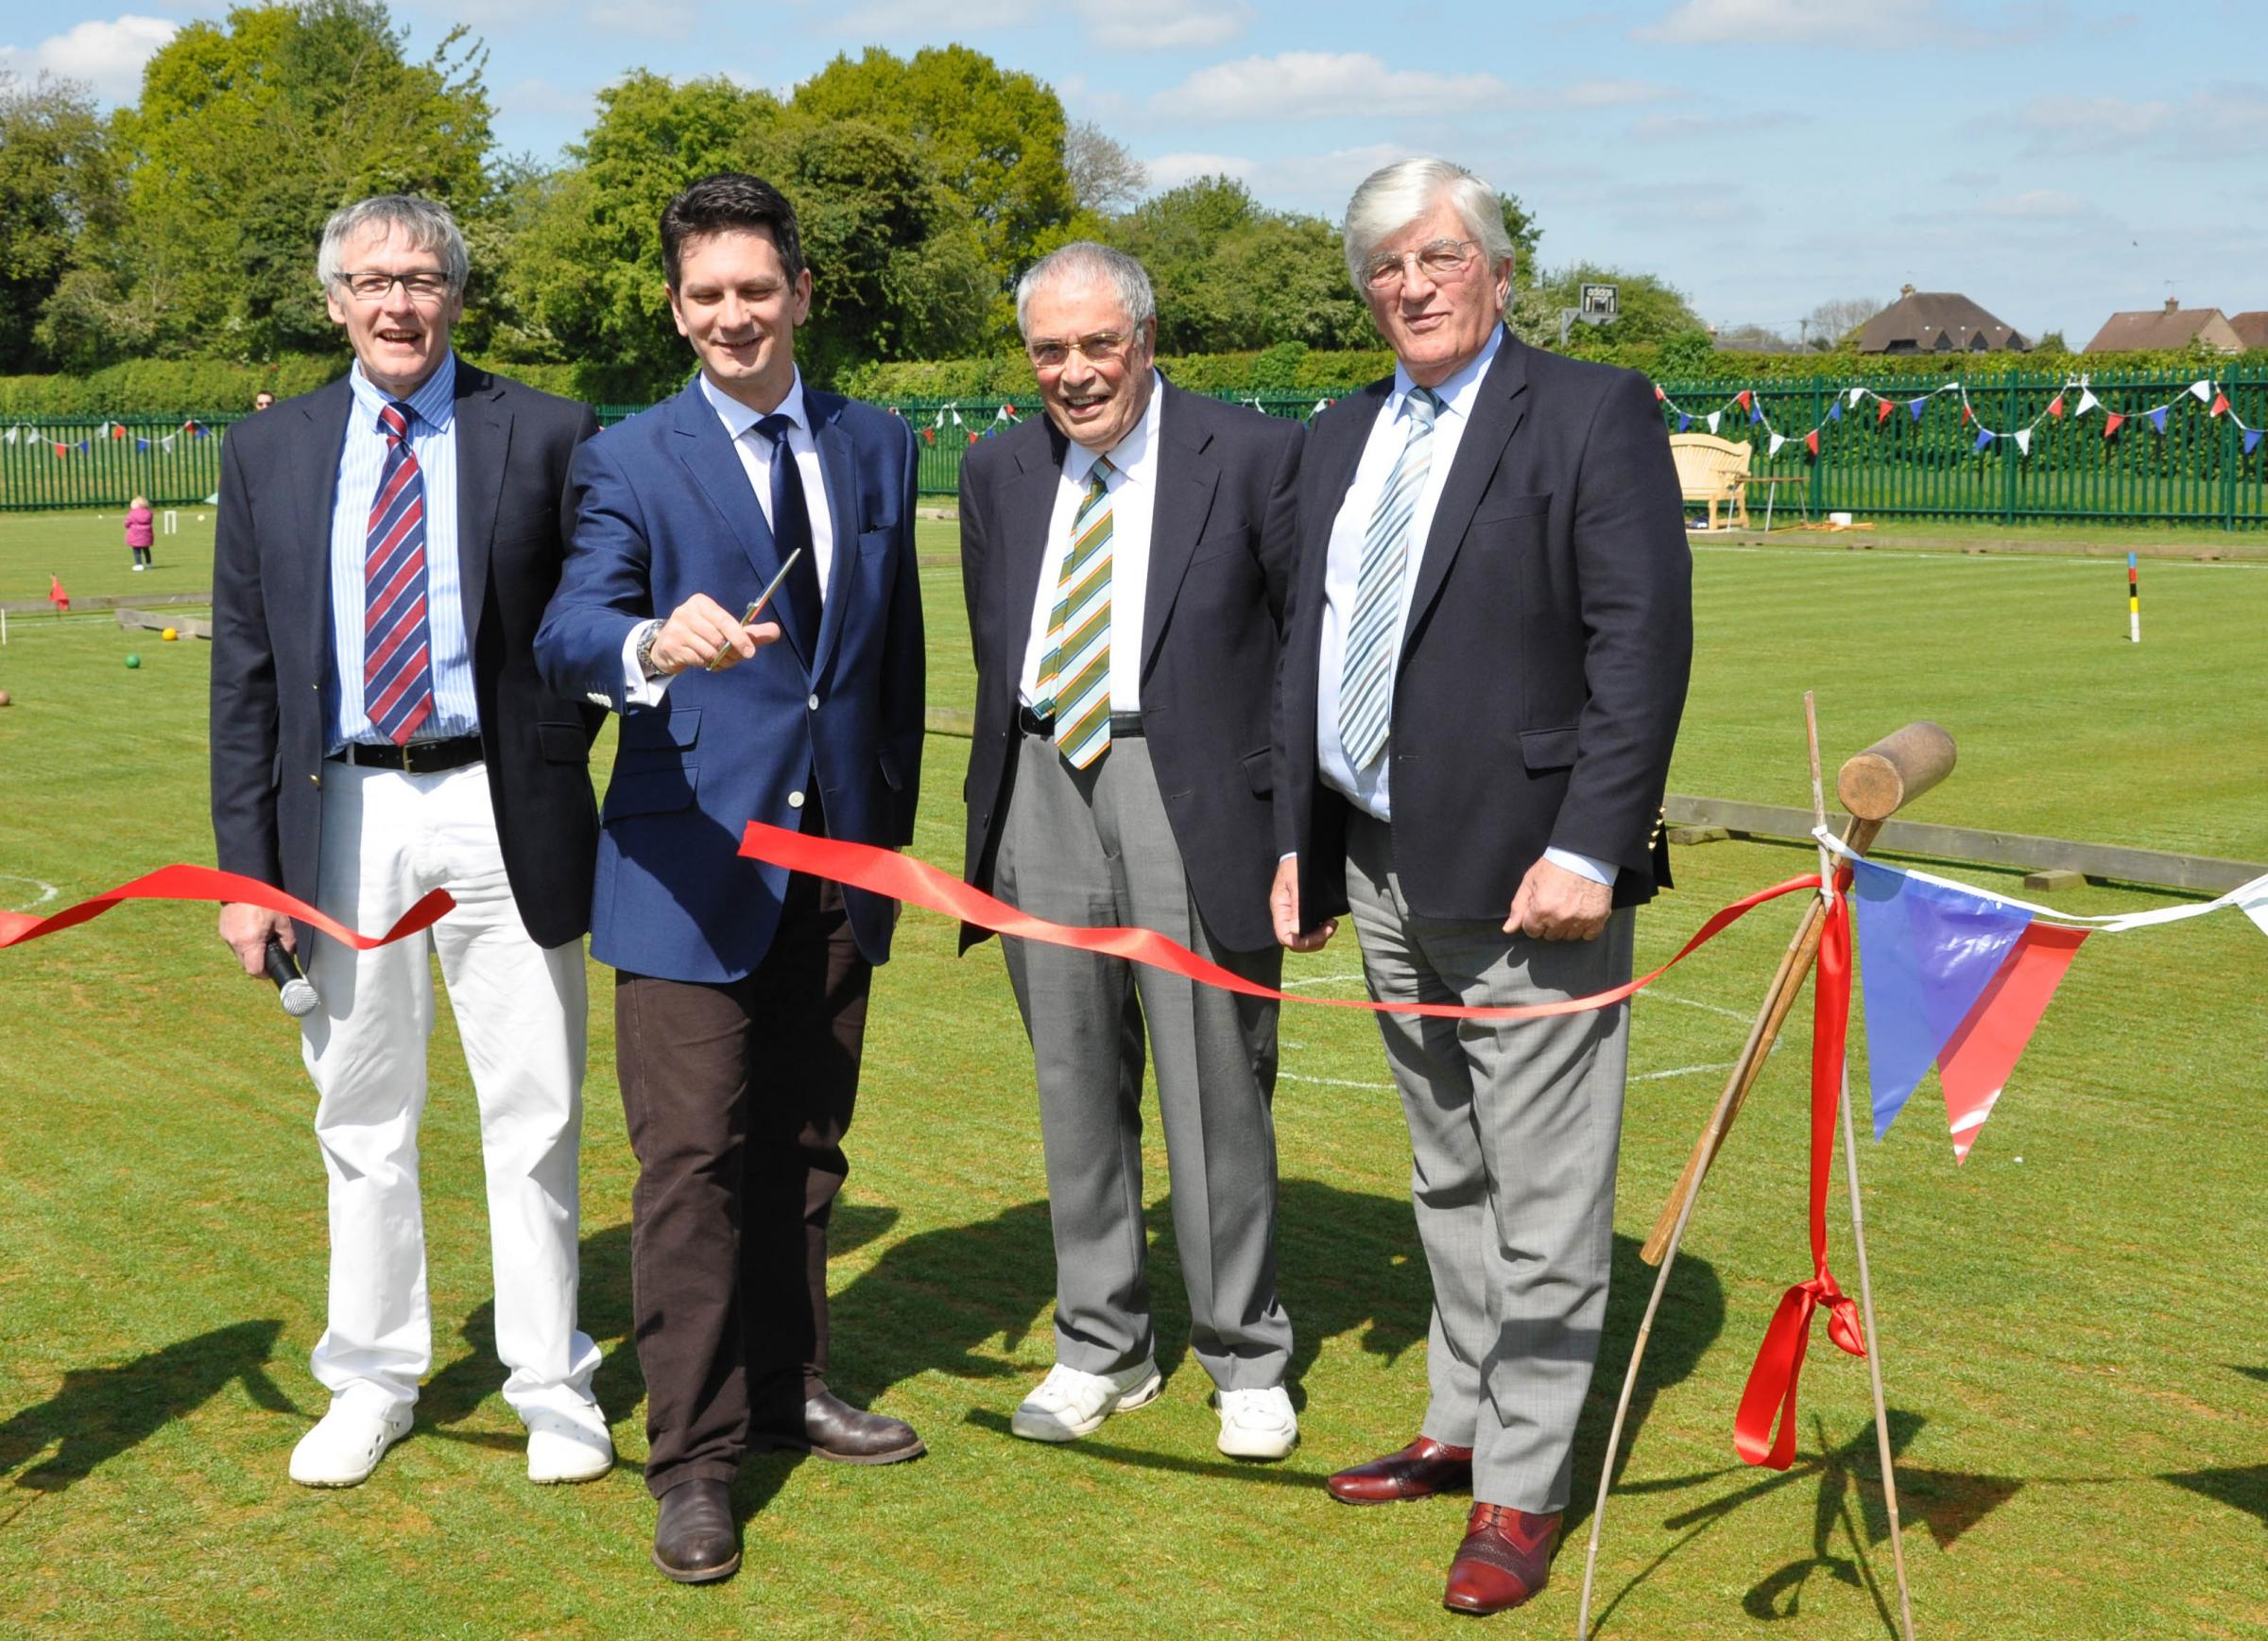 Hazlemere croquet lawns opened by Wycombe MP